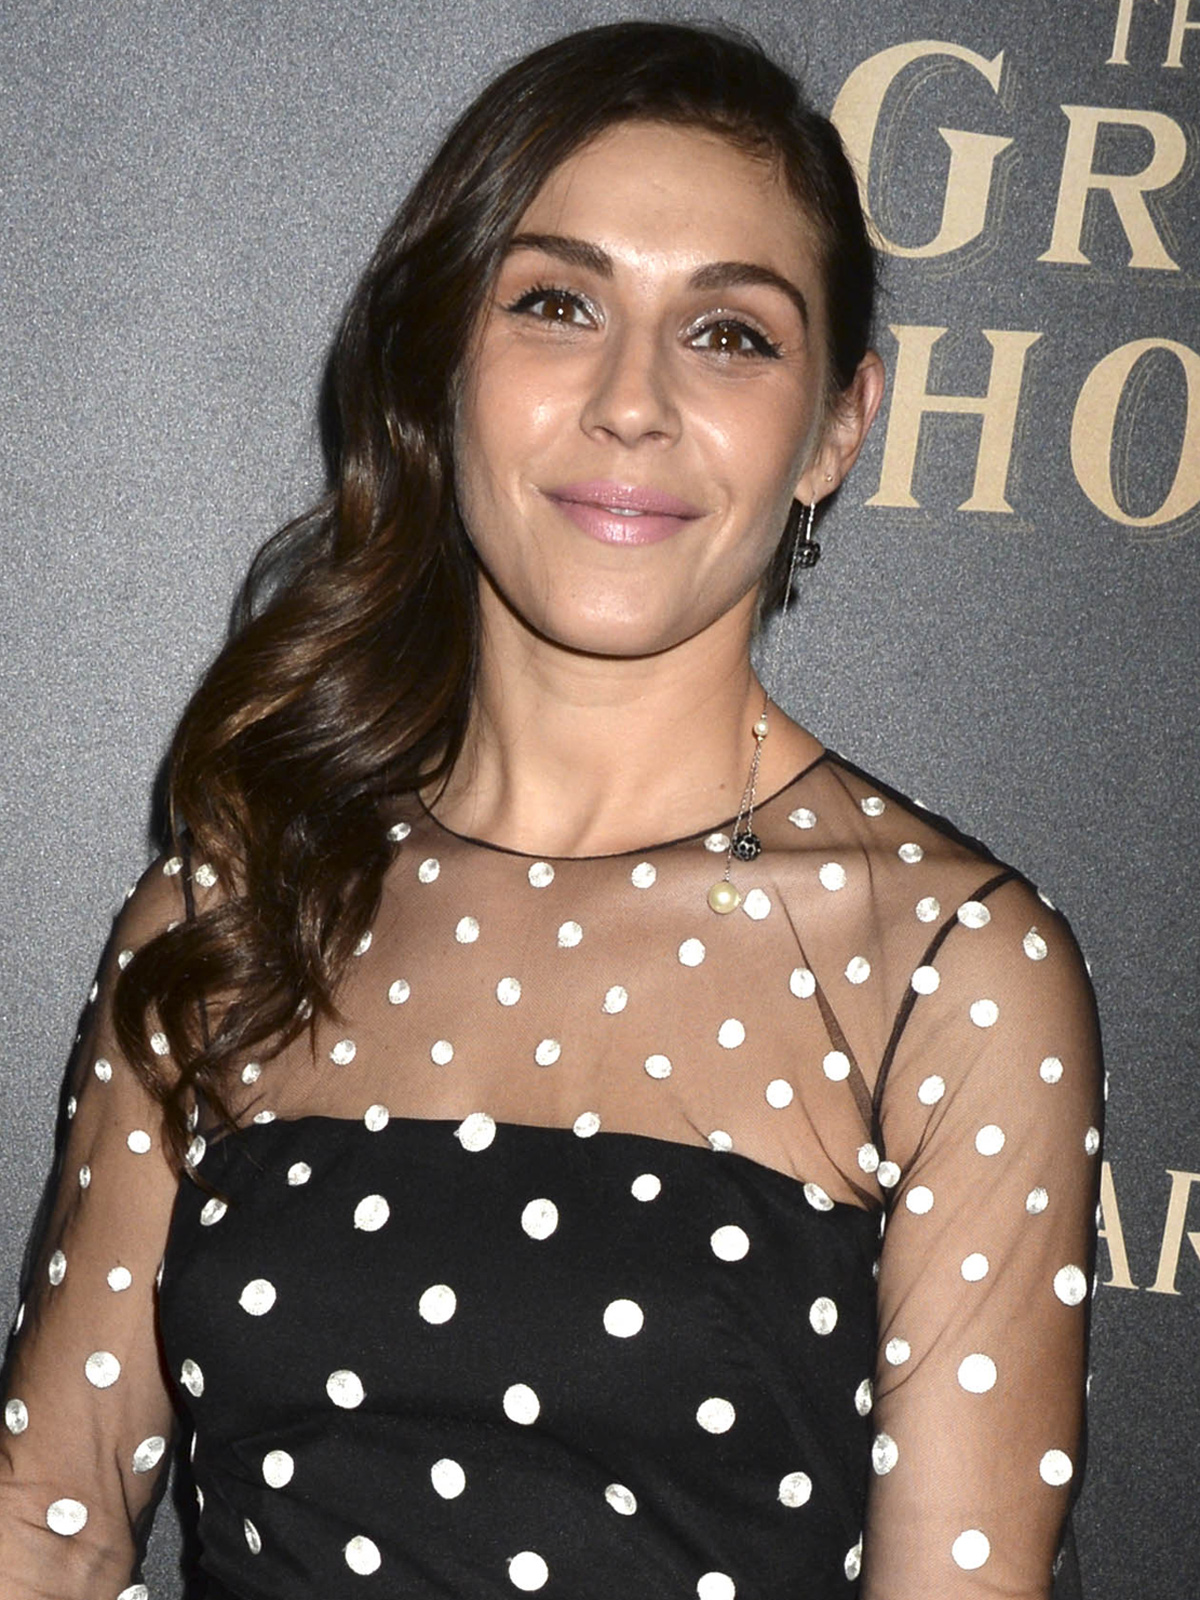 Lili Mirojnick Allocine Lili mirojnick was born in new york city, to ellen mirojnick, a costume designer and actress (best known for designing costumes for the 2009 film g.i. https www allocine fr personne fichepersonne gen cpersonne 212486 html